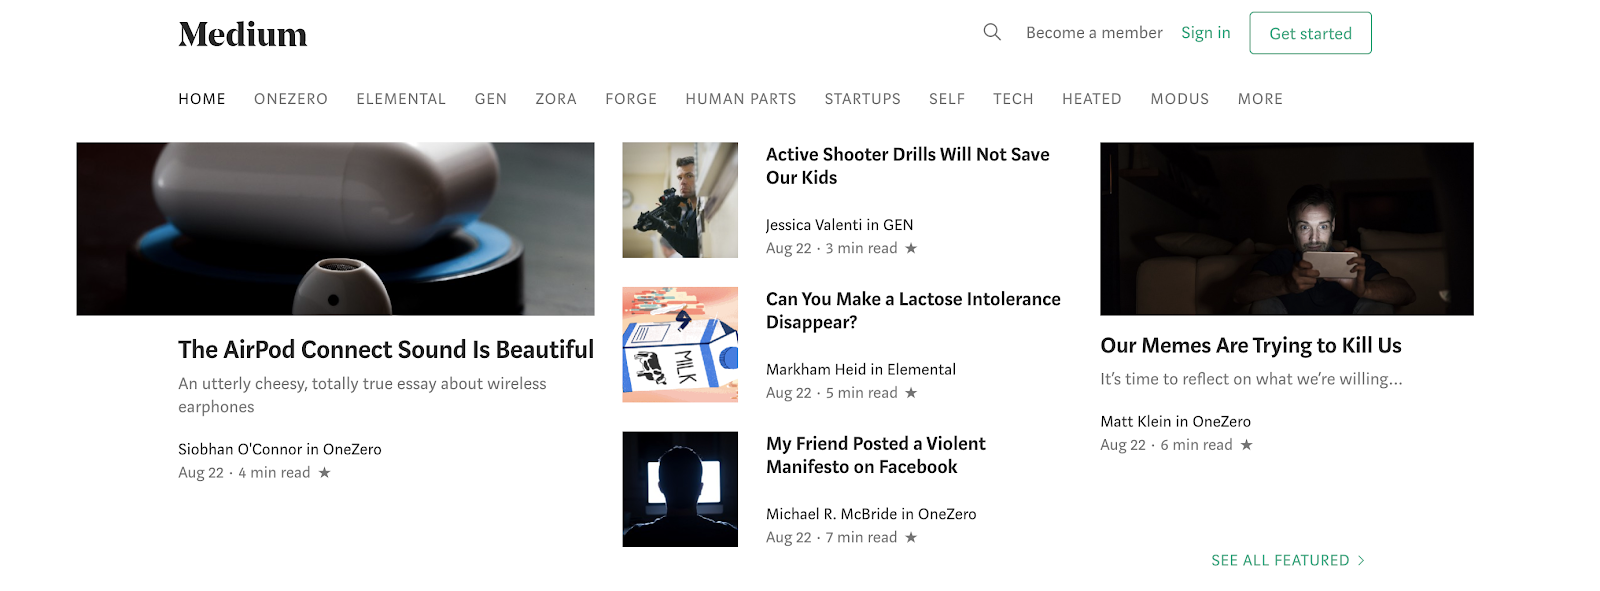 Medium as a Free Blogging Site to Use for Getting Started Today